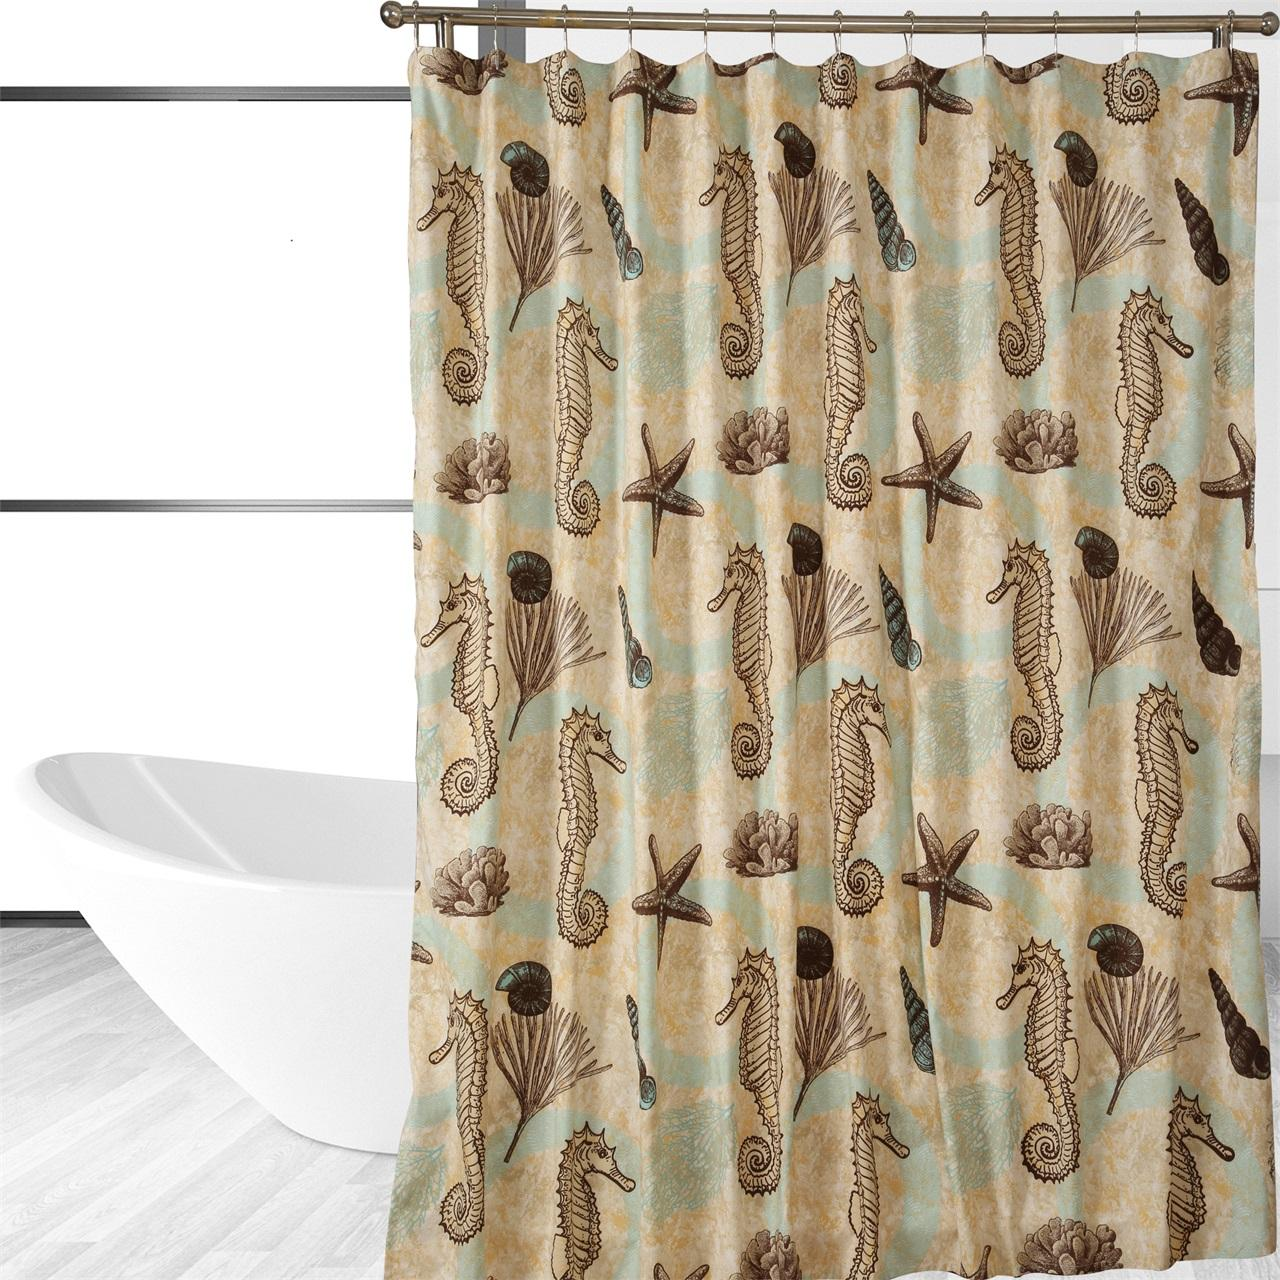 Sins such adult theme shower curtain have